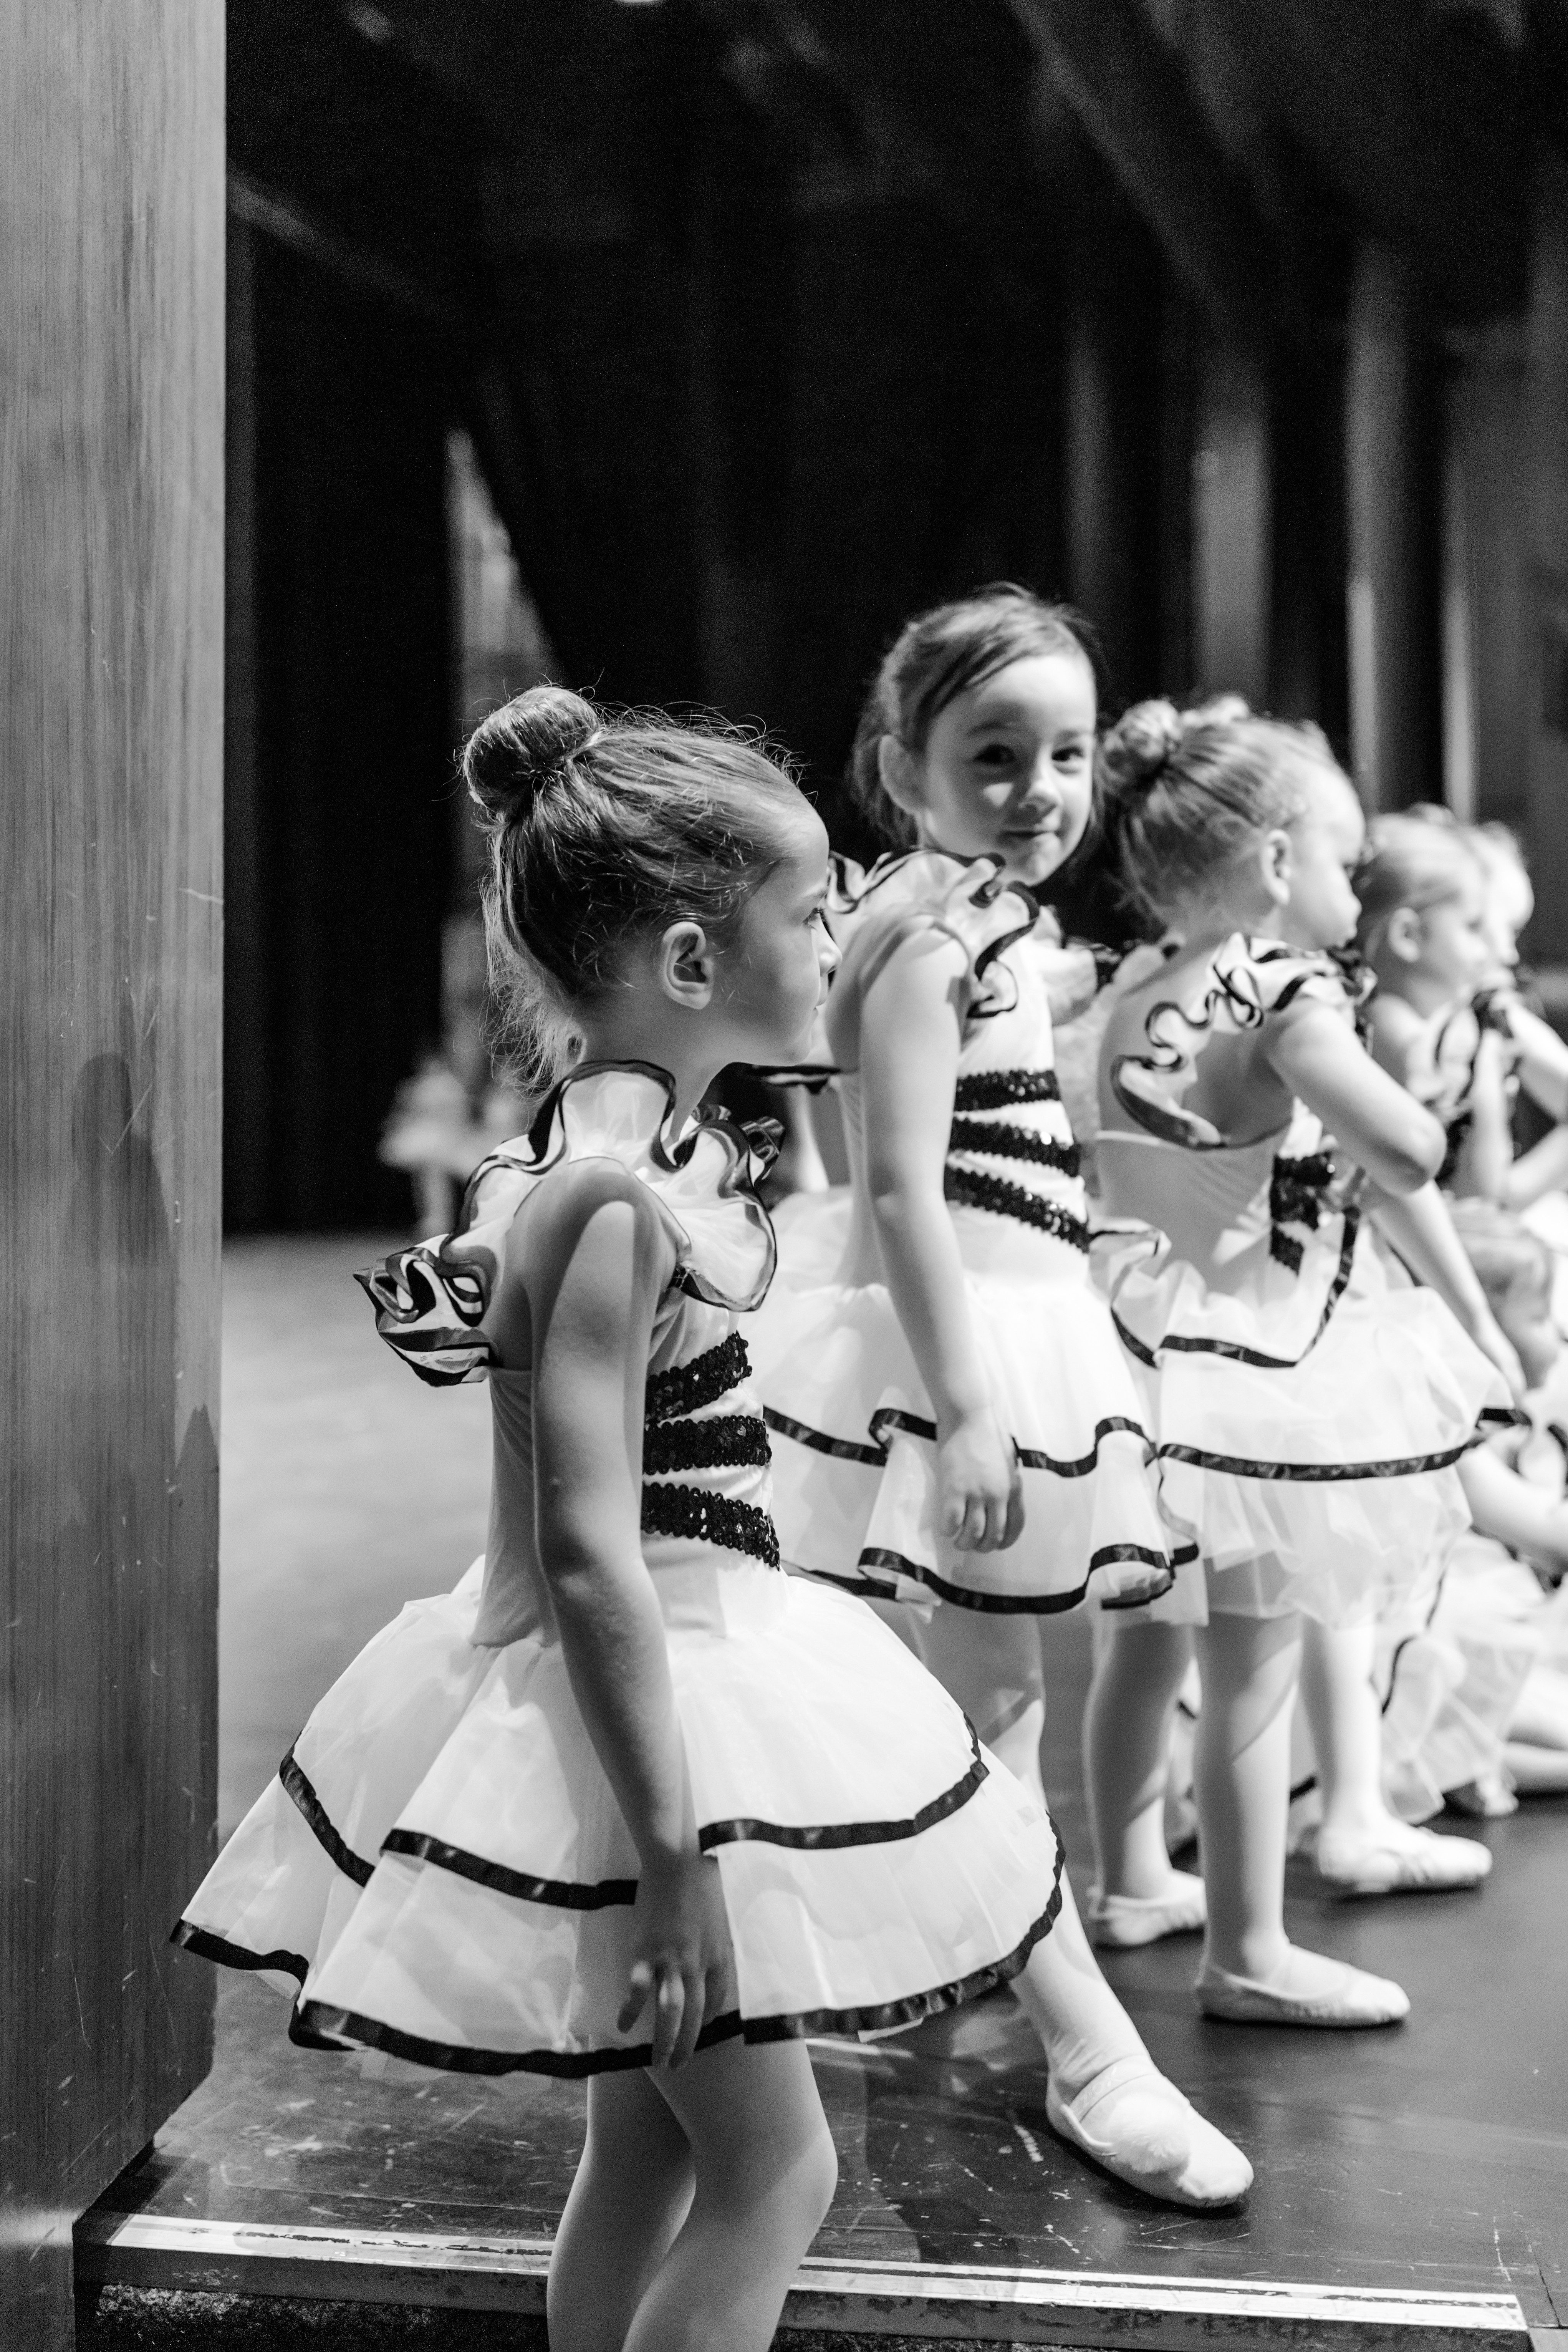 Half-Day Ballet Camp for Ages 4-8